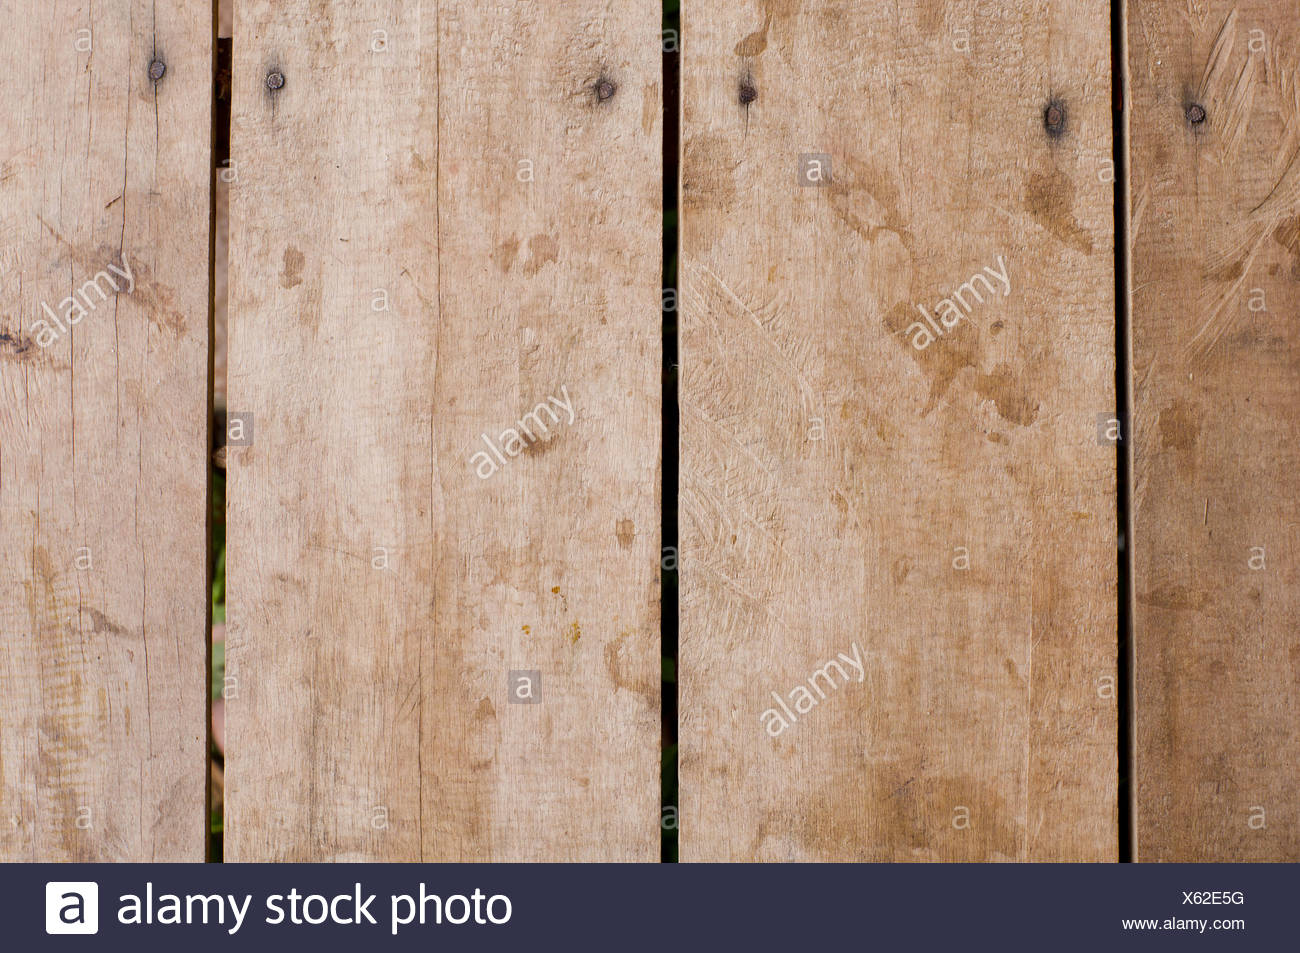 wooden planks backgrounds - Stock Image